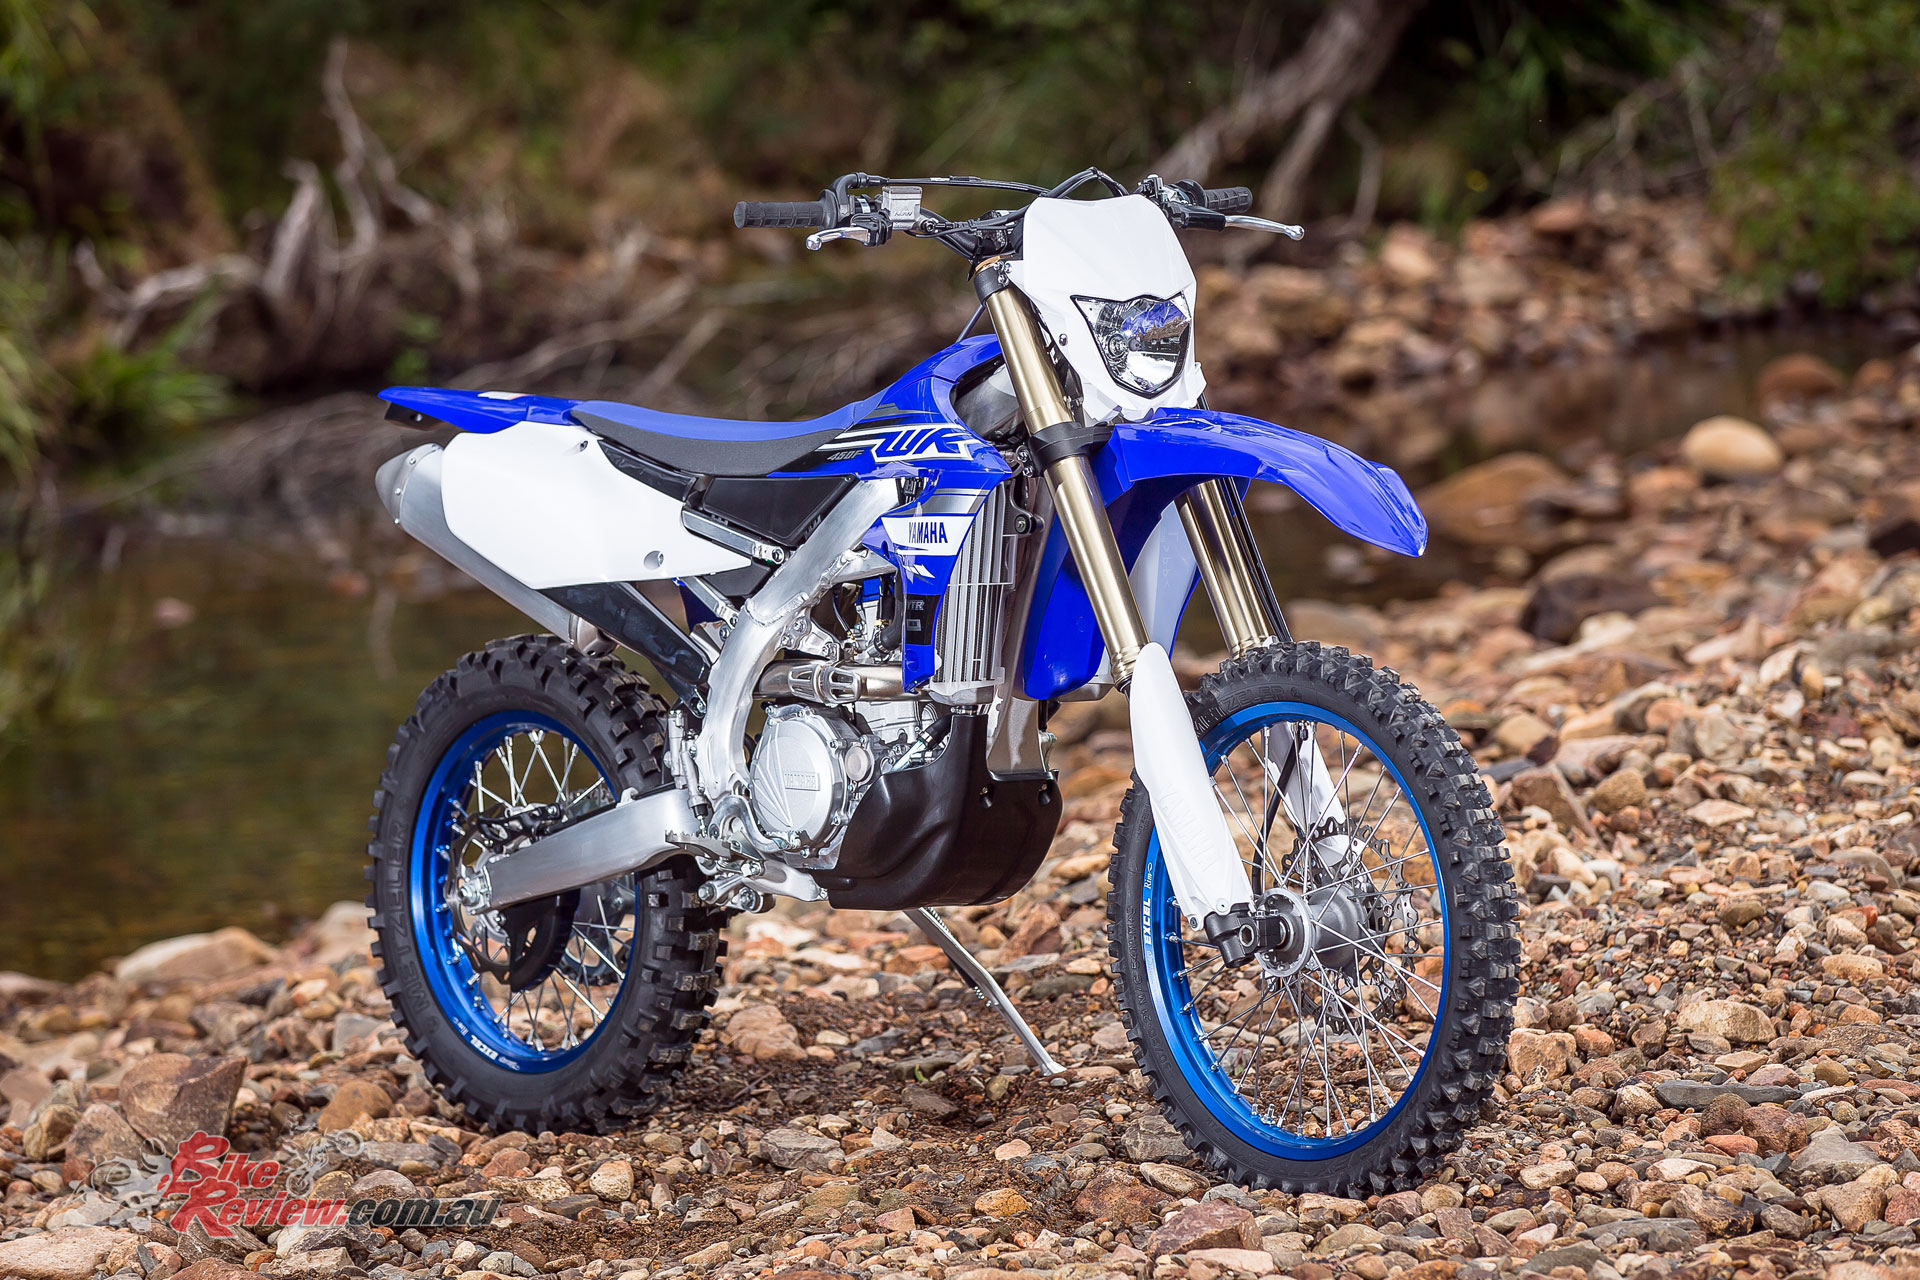 The 2019 WR450F features a power house engine with great versatility